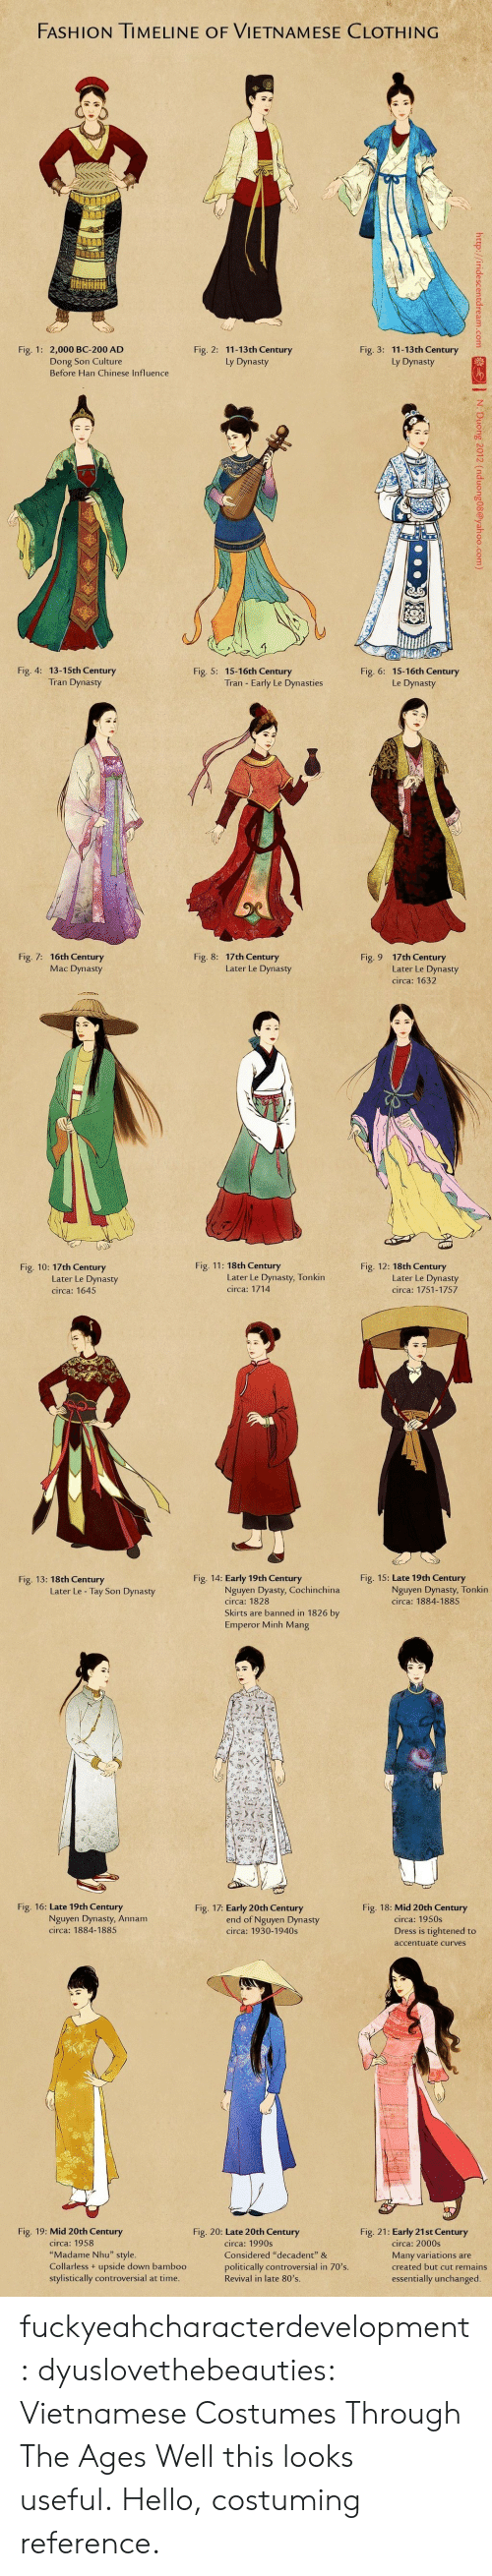 """80s, Bailey Jay, and Fashion: FASHION TIMELINE OF VIETNAMESE CLOTHING  Fig. 3: 11-13th Century  Ly Dynasty  Fig. 1: 2,000 BC-200 AD  Fig. 2: 11-13th Century  Ly Dynasty  Dong Son Culture  Before Han Chinese Influence   Fig. 4: 13-15th Century  Fig. 5: 15-16th Century  Fig. 6: 15-16th Century  Le Dynasty  Tran Dynasty  Tran - Early Le Dynasties  Fig. 7: 16th Century  Mac Dynasty  Fig. 8: 17th Century  Fig. 9  0  17th Century  Later Le Dynasty  circa: 1632  Later Le Dynasty   Fig. 10: 17th Century  Fig. 11: 18th Century  Fig. 12: 18th Century  Later Le Dynasty  circa: 1645  Later Le Dynasty, Tonkin  circa: 1714  Later Le Dynasty  circa: 1751-1757  Fig. 13: 18th Century  Fig. 14: Early 19th Century  Fig. 15: Late 19th Century  Nguyen Dynasty, Tonkin  circa: 1884-1885  Nguyen Dyasty, Cochinchina  circa: 1828  Skirts are banned in 1826 by  Emperor Minh Mang  Later Le - Tay Son Dynasty   Fig. 16: Late 19th Century  Fig. 17: Early 20th Century  Fig. 18: Mid 20th Century  Nguyen Dynasty, Annam  circa: 1884-1885  circa: 1950s  end of Nguyen Dynasty  circa: 1930-1940s  Dress is tightened to  accentuate curves  Fig. 19: Mid 20th Century  Fig. 20: Late 20th Century  Fig. 21: Early 21st Century  circa: 1958  """"Madame Nhu"""" style.  Collarless+ upside down bamboo  stylistically controversial at time  circa: 1990s  Considered """"decadent &  politically controversial in 70's.  Revival in late 80's  circa: 2000s  Many variations are  created but cut remains  essentially unchanged. fuckyeahcharacterdevelopment:  dyuslovethebeauties:  Vietnamese Costumes Through The Ages  Well this looks useful.Hello, costuming reference."""